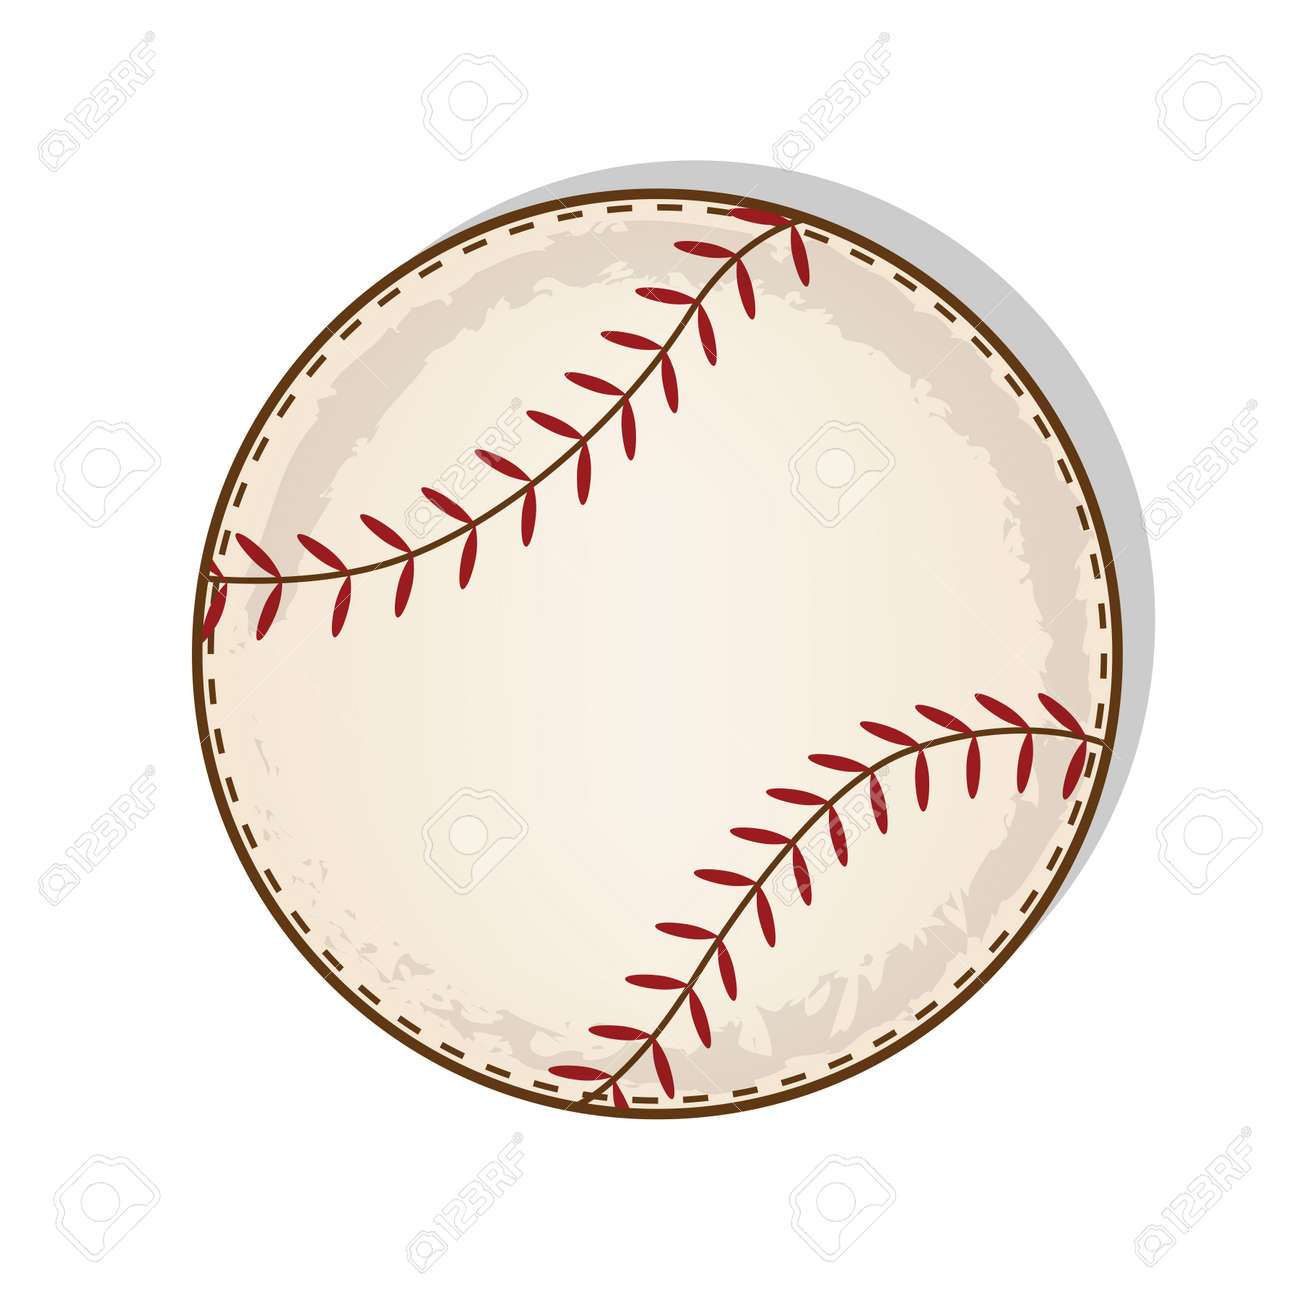 aged vintage baseball vector on a transparent background royalty